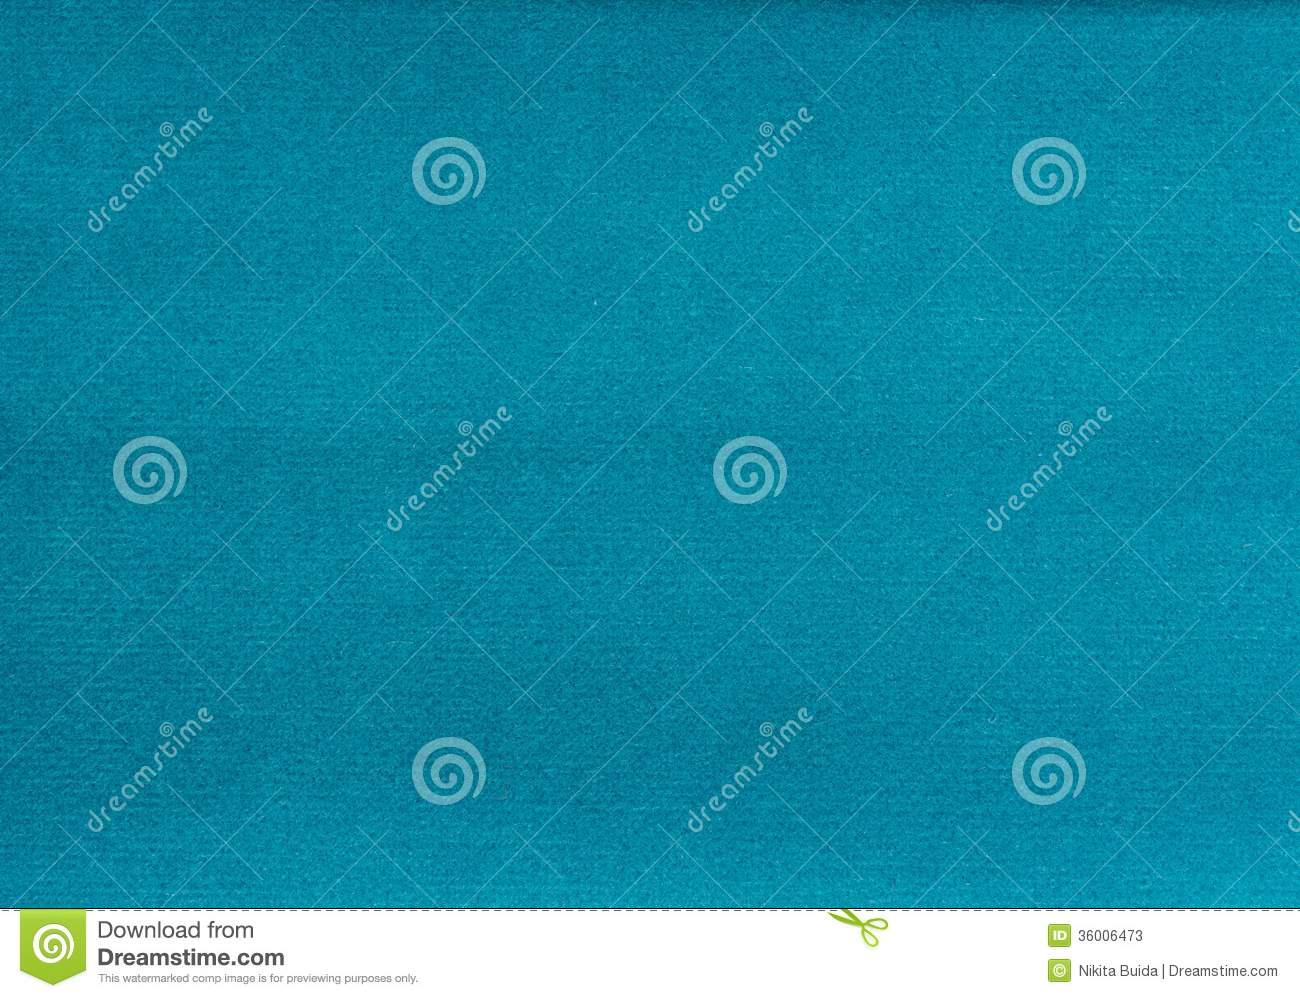 Plain Color Fabric Texture Background Stock Photos - Image: 36006473